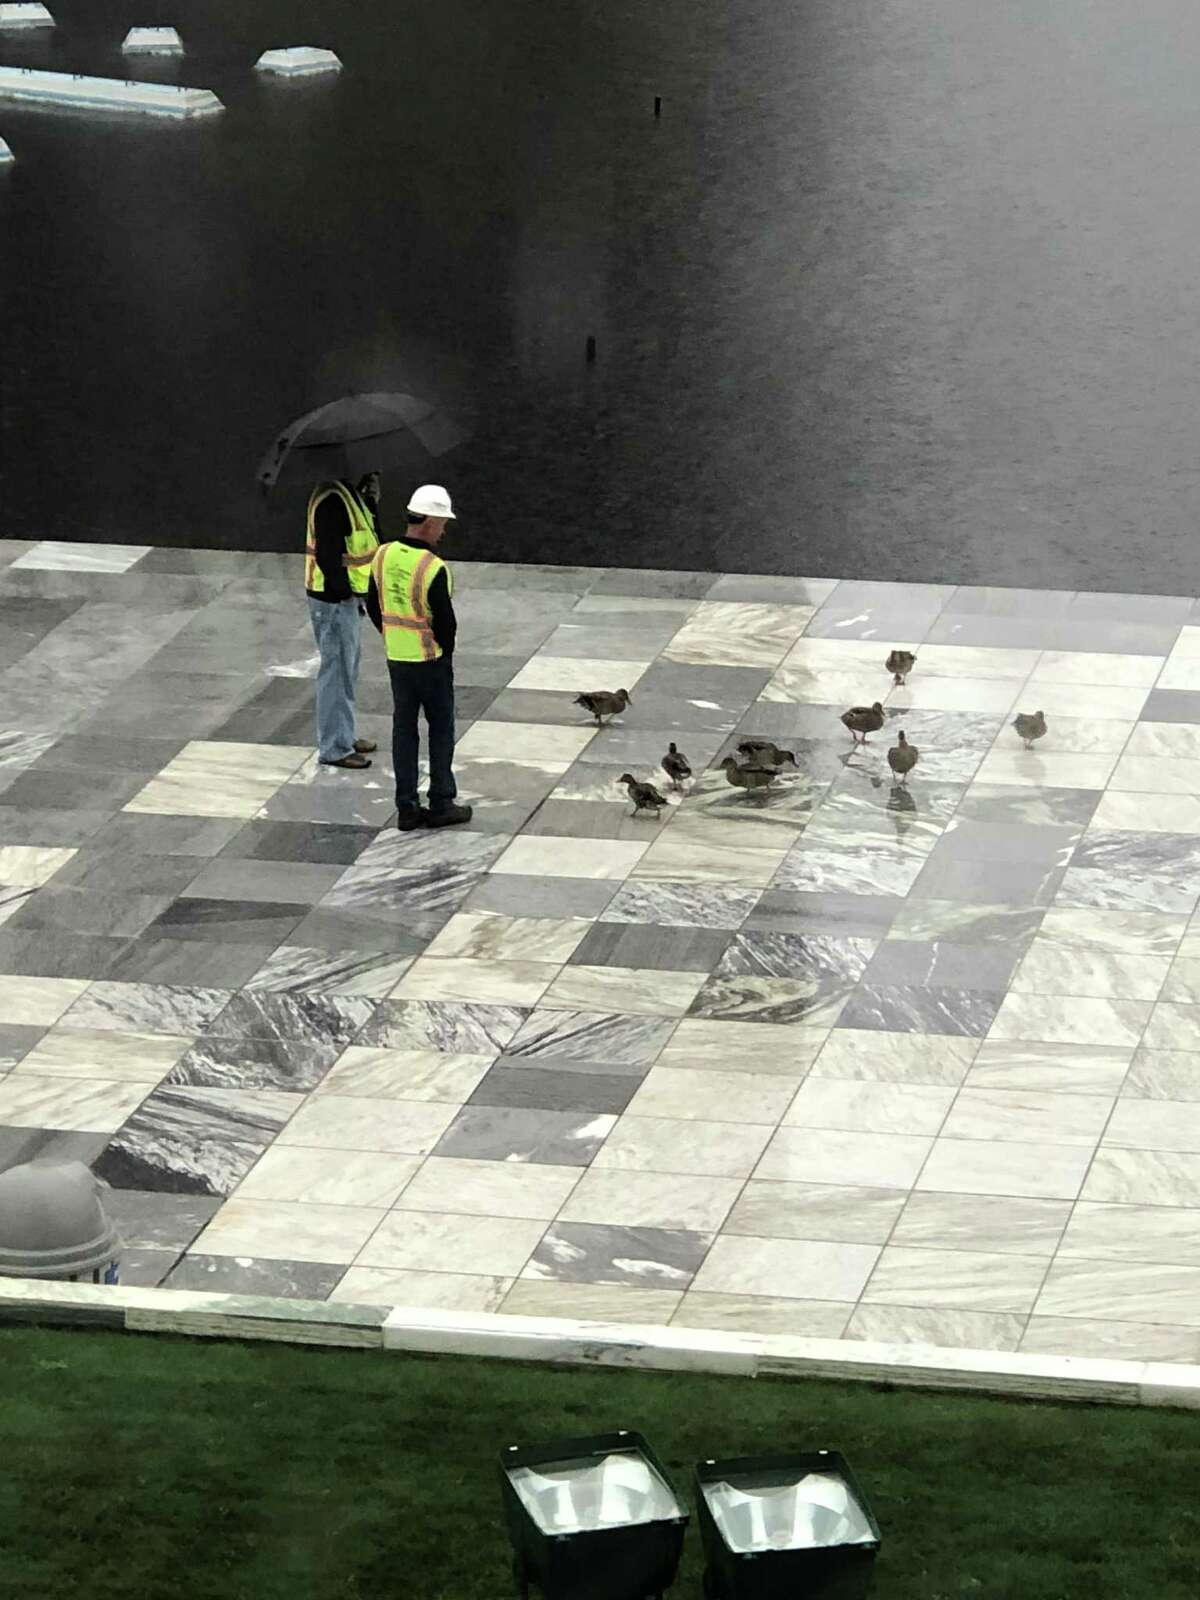 Erica Lovrin captures some of the goings-on at the Empire State Plaza last week.